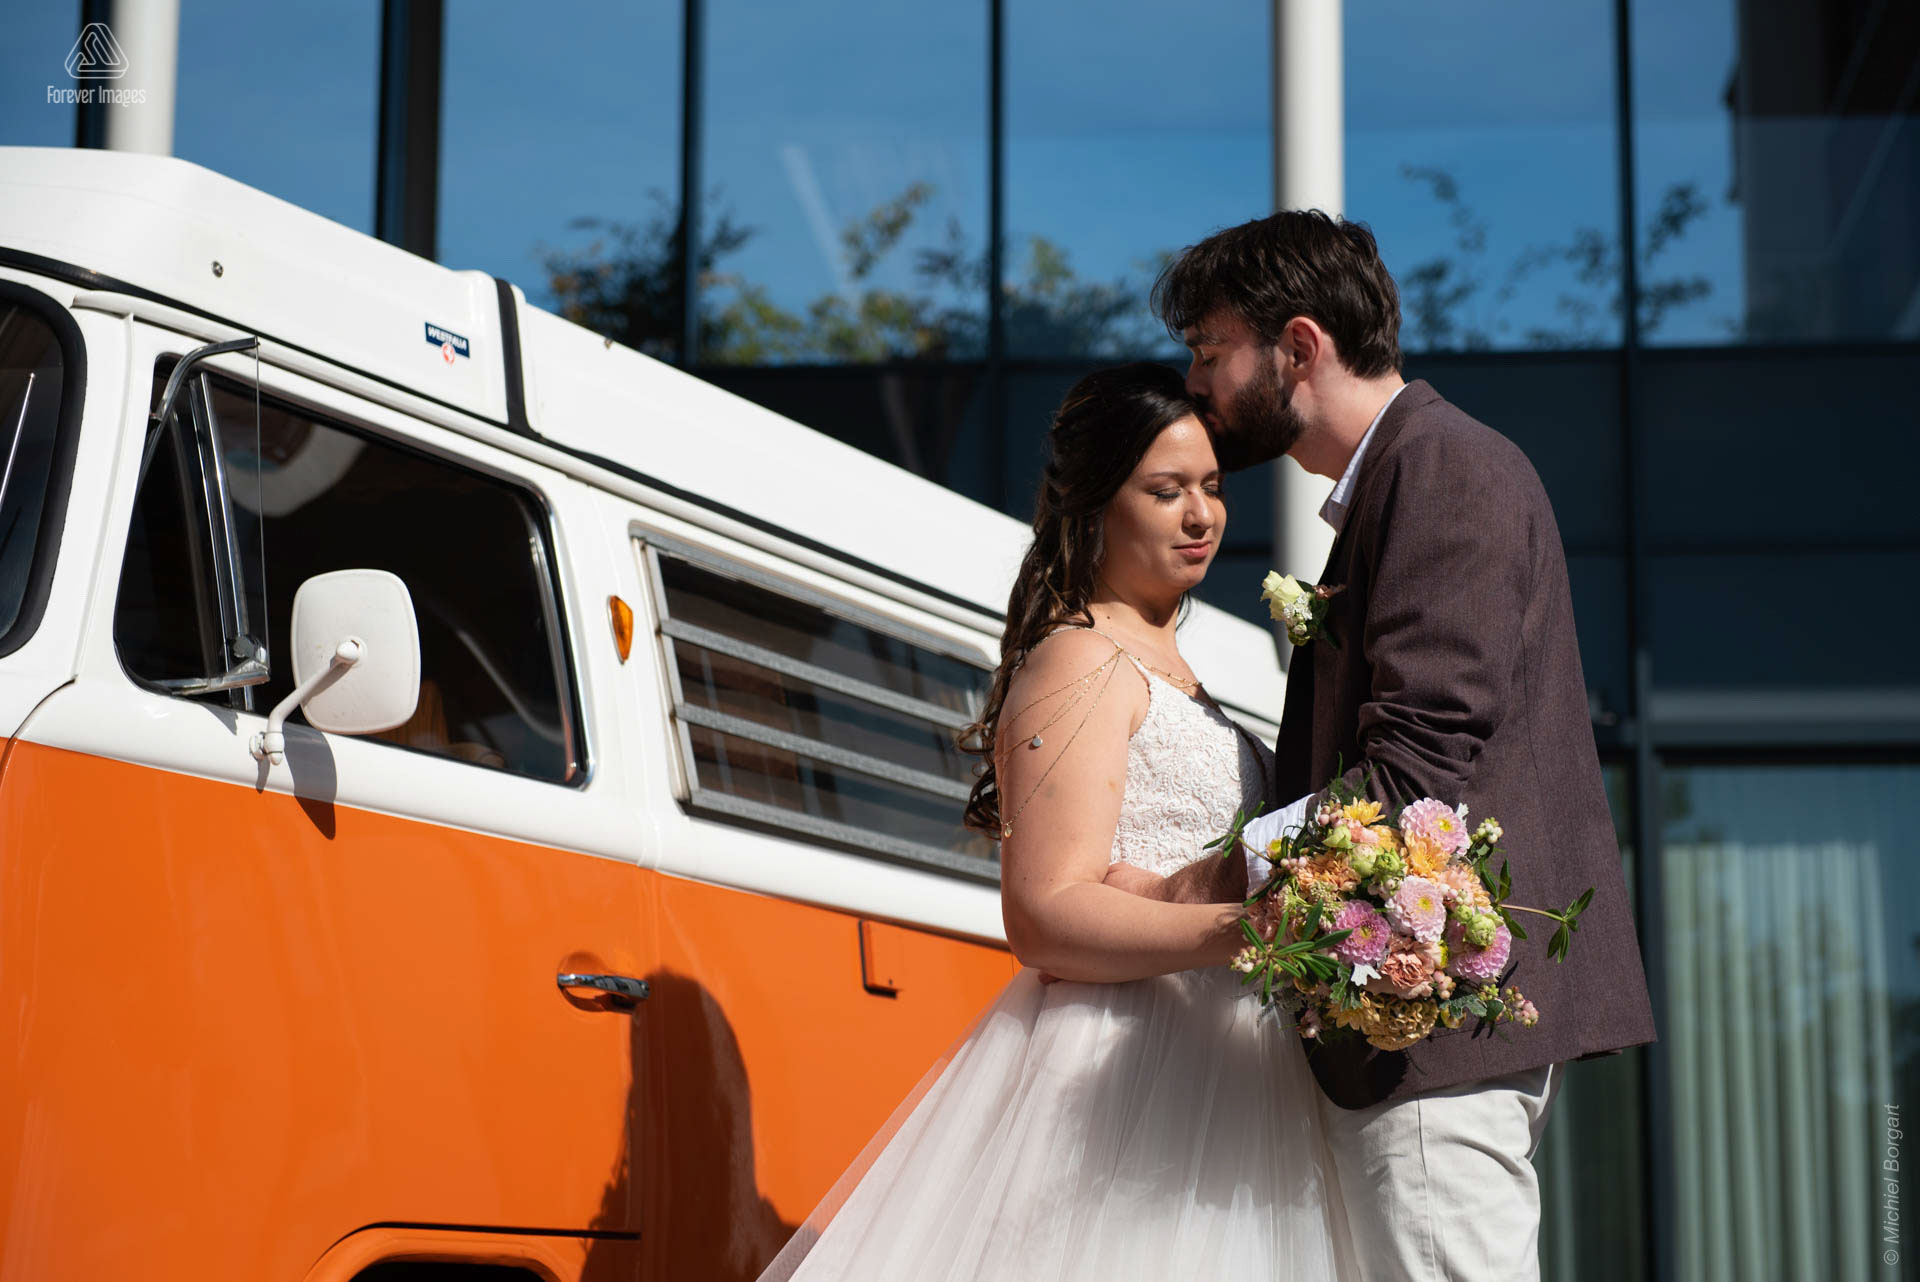 Bridal photo wedding couple in front of bridal car volkswagen van white orange | Wedding Photographer Michiel Borgart - Forever Images.